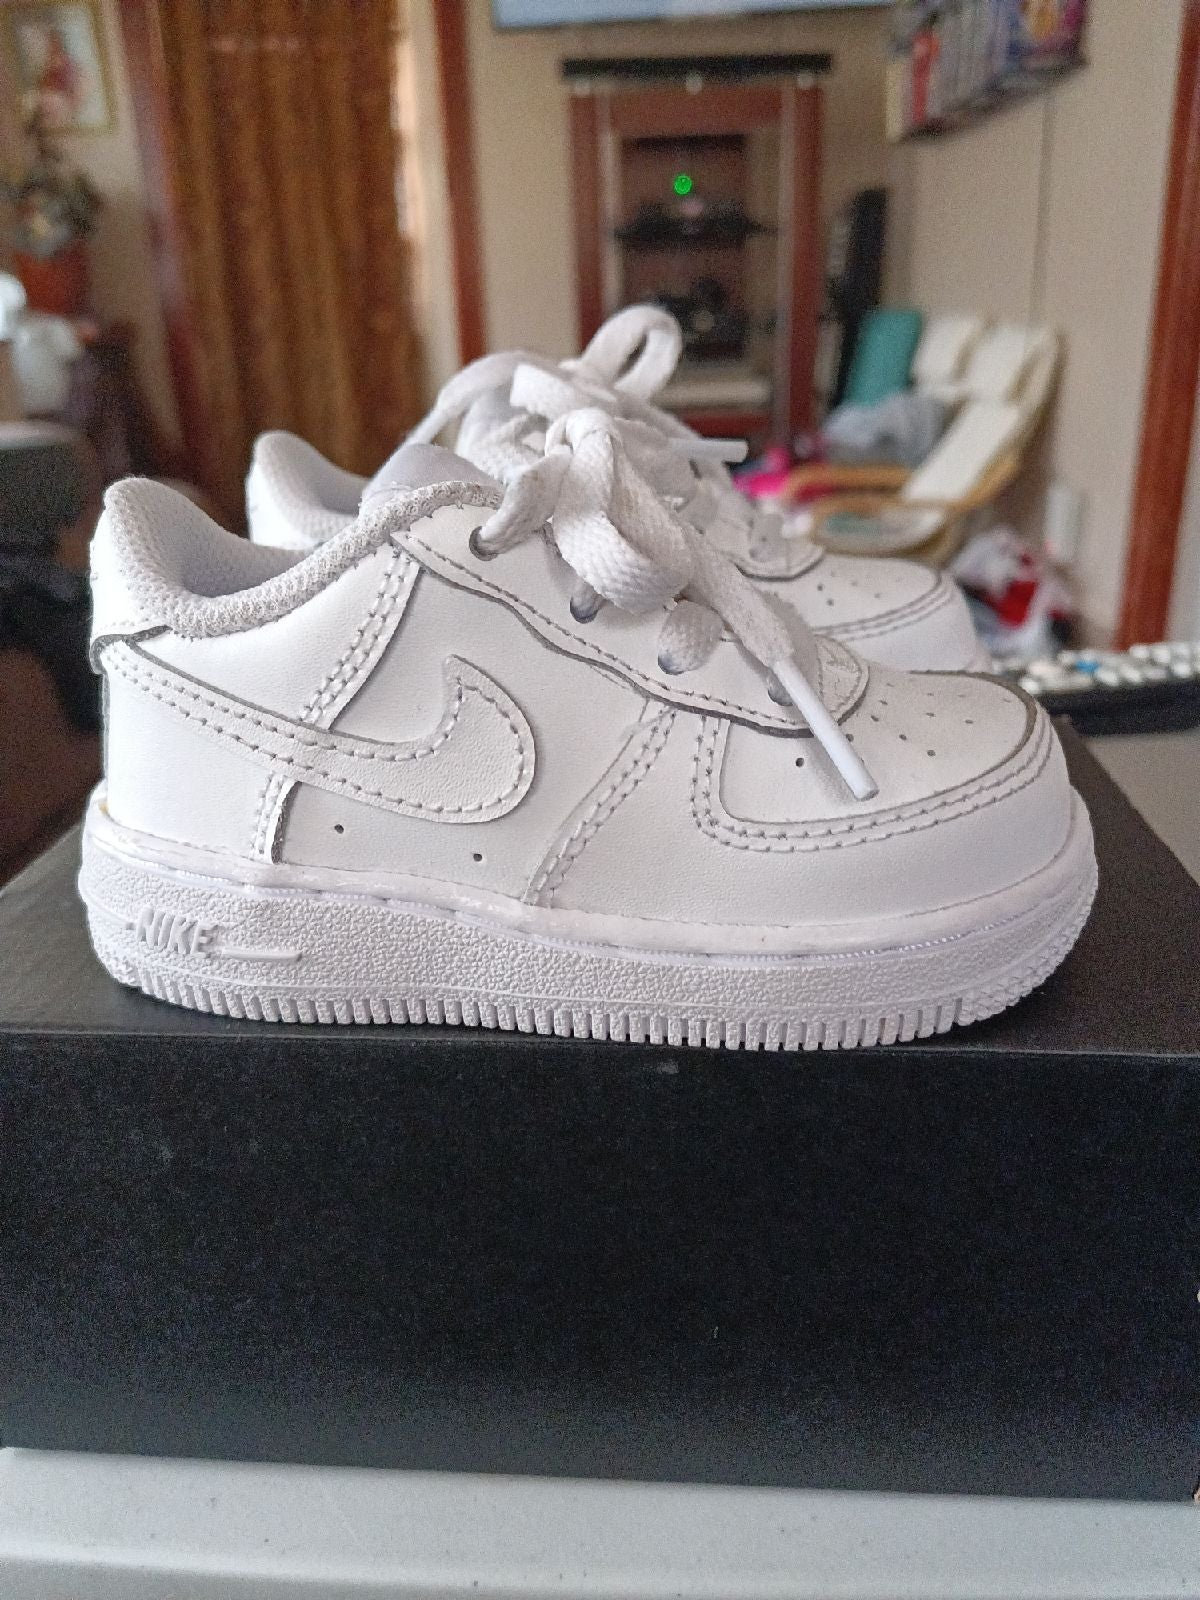 Nike Air Force 1 size 5c